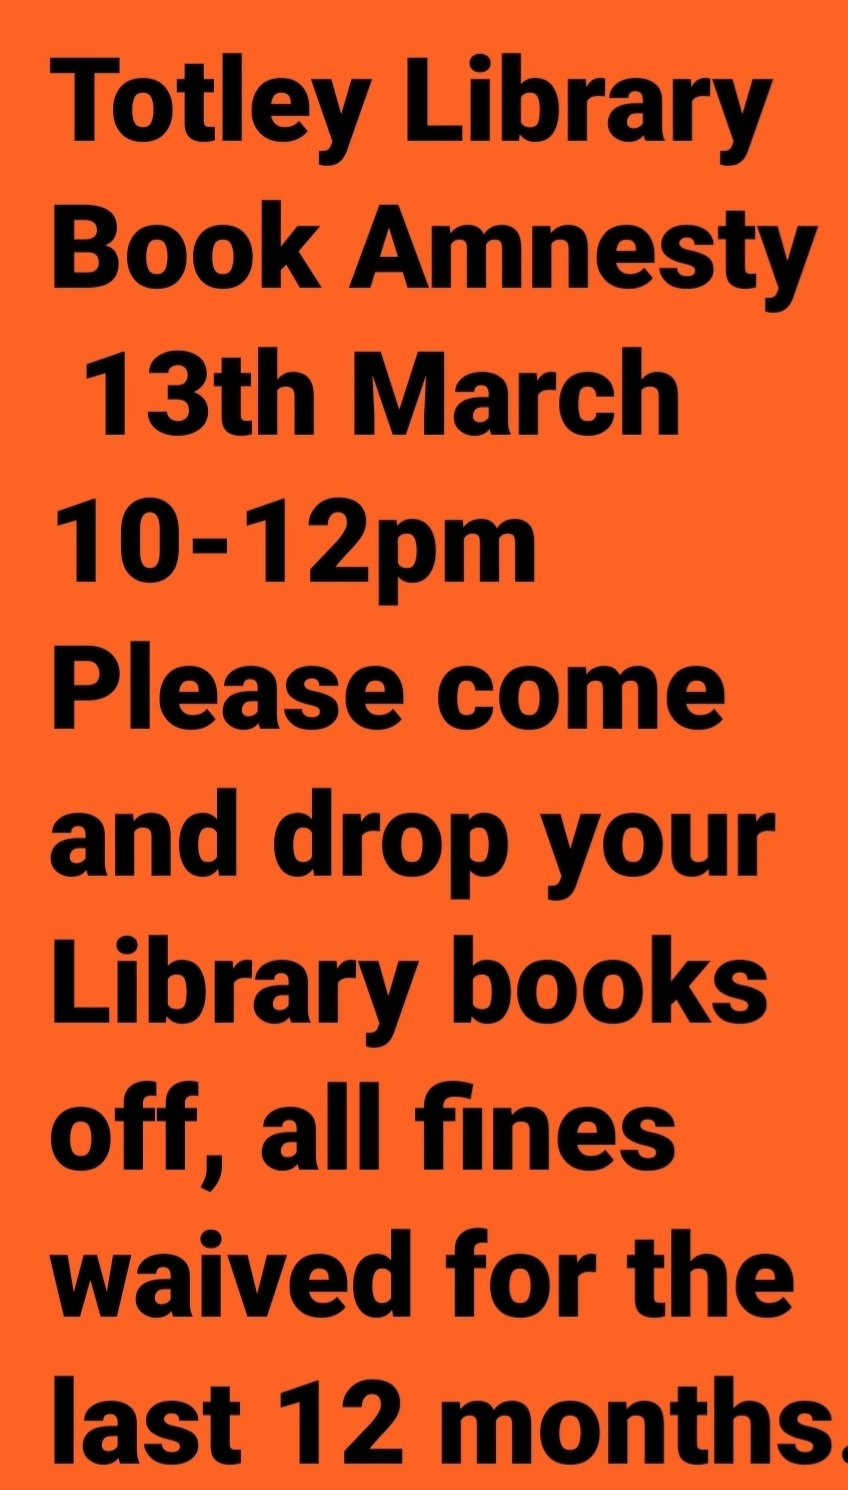 Totley Library Book Amnesty